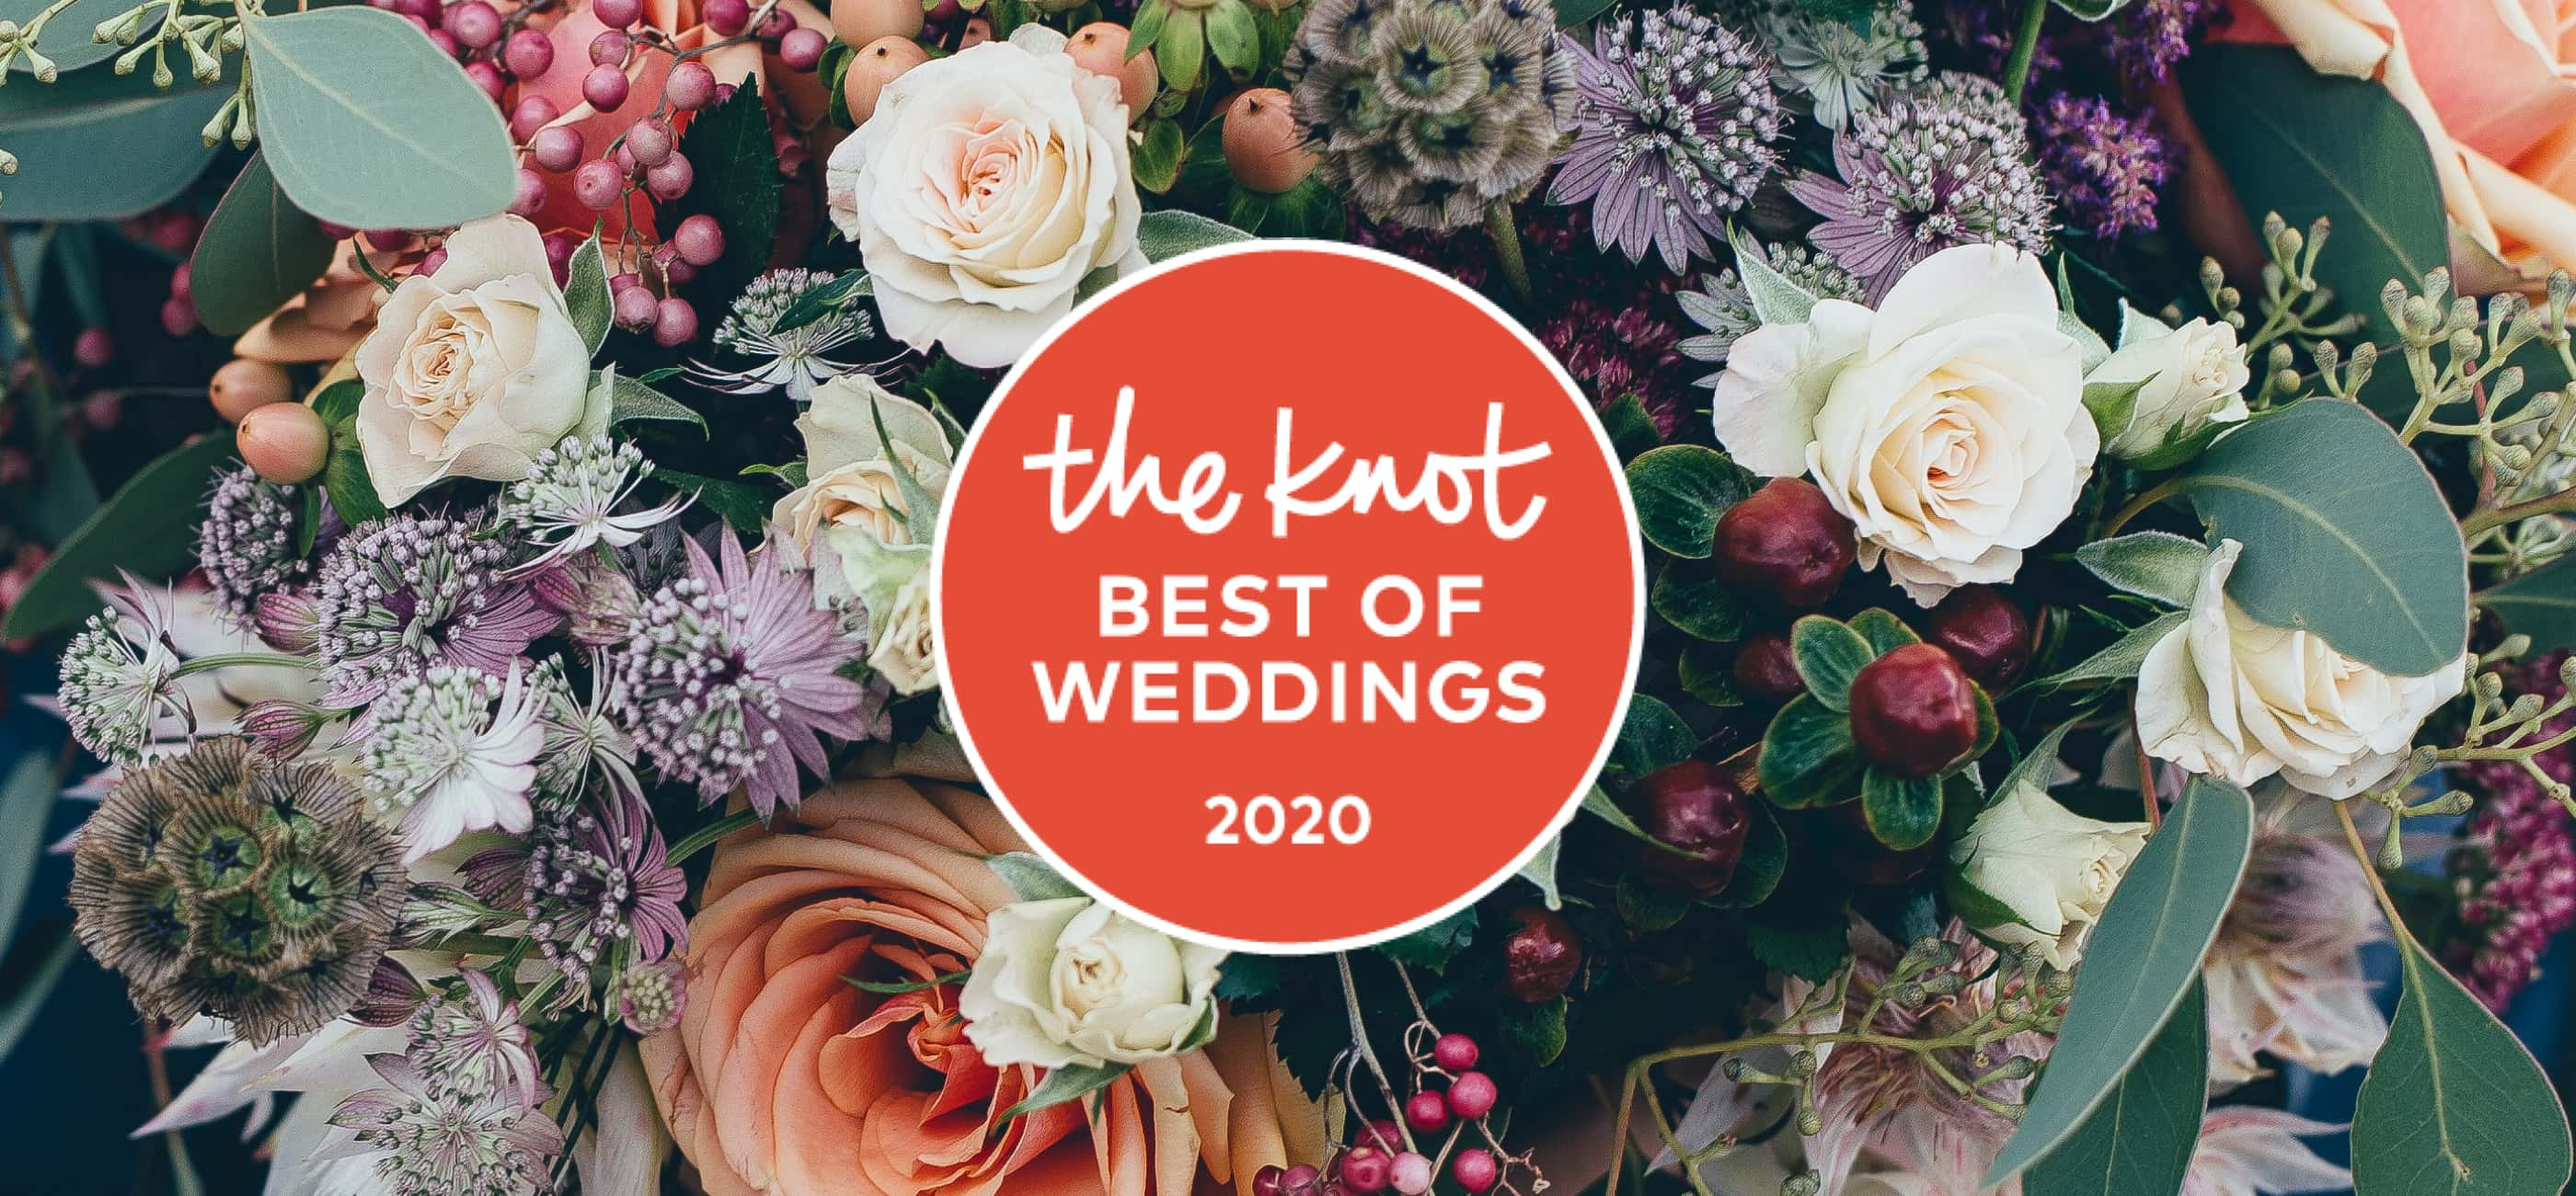 The Knot 2020 Best Of Weddings Aware On Top Of Flower Background. Desktop Image